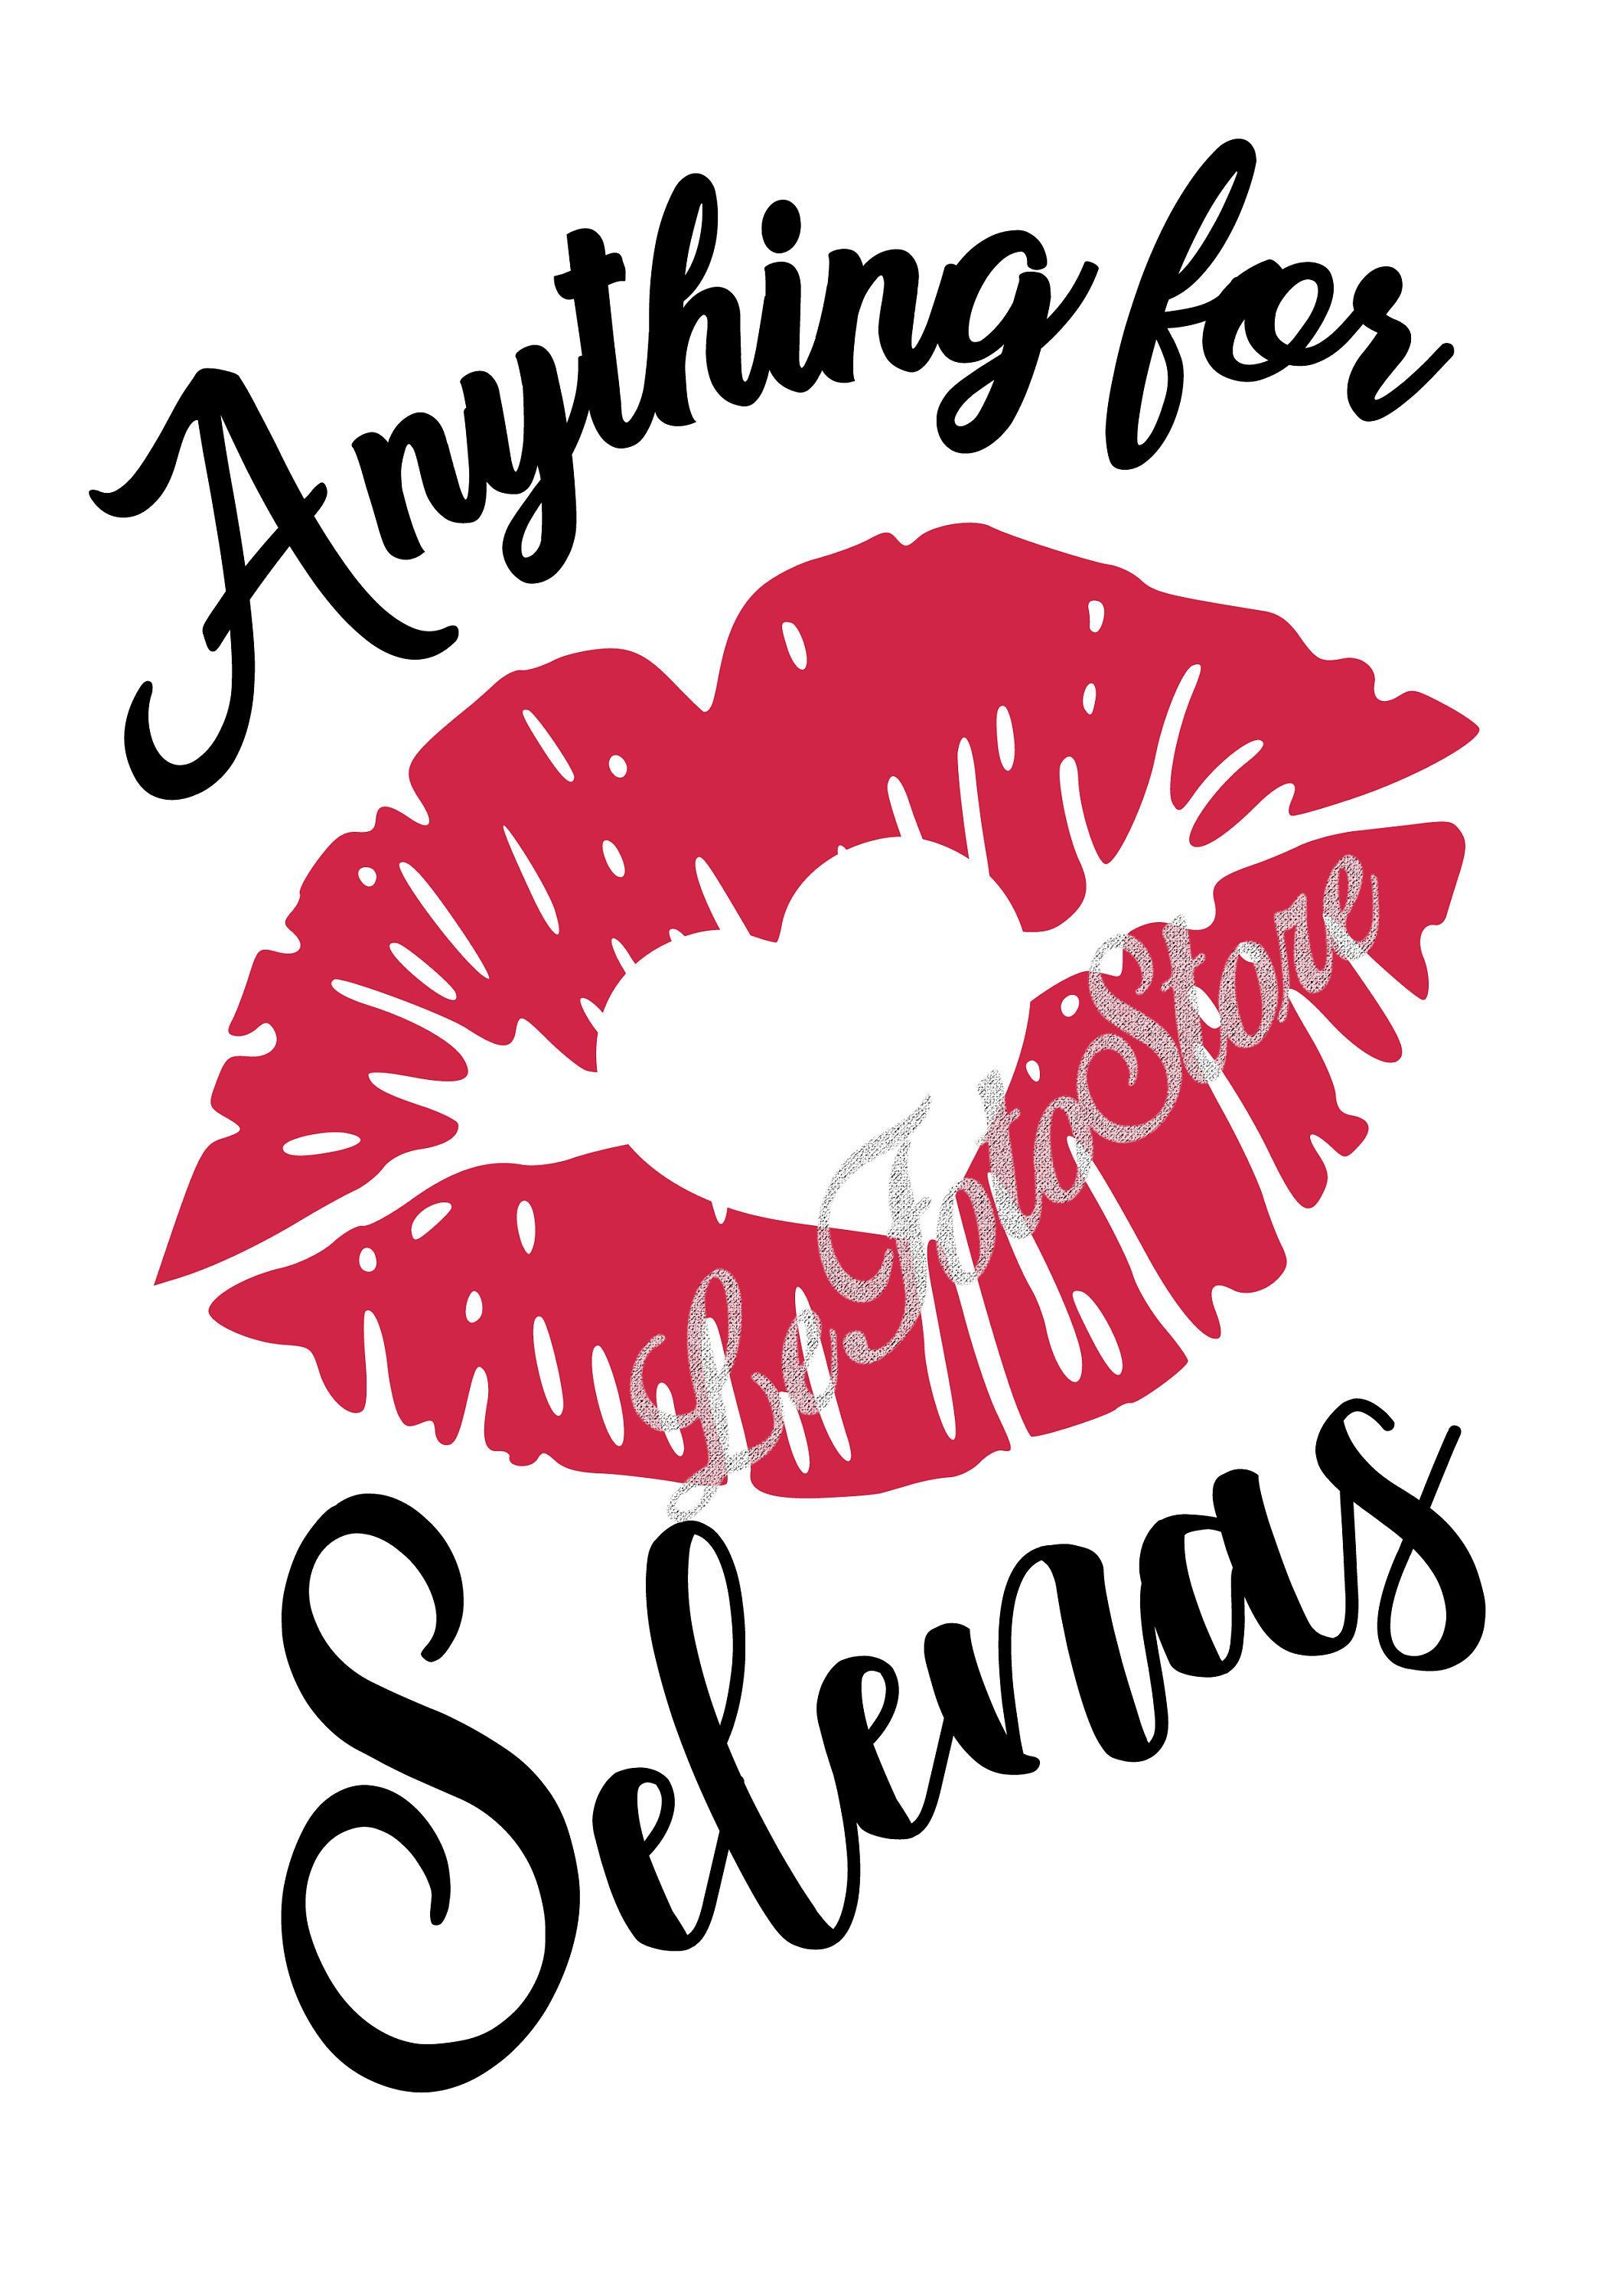 Digital Svg Png Jpg Pdf Selena Quintanilla Silhouette Vector Clipart Instant Download Red Lips Heart Ki Selena Quintanilla Selena Selena Quintanilla Quotes